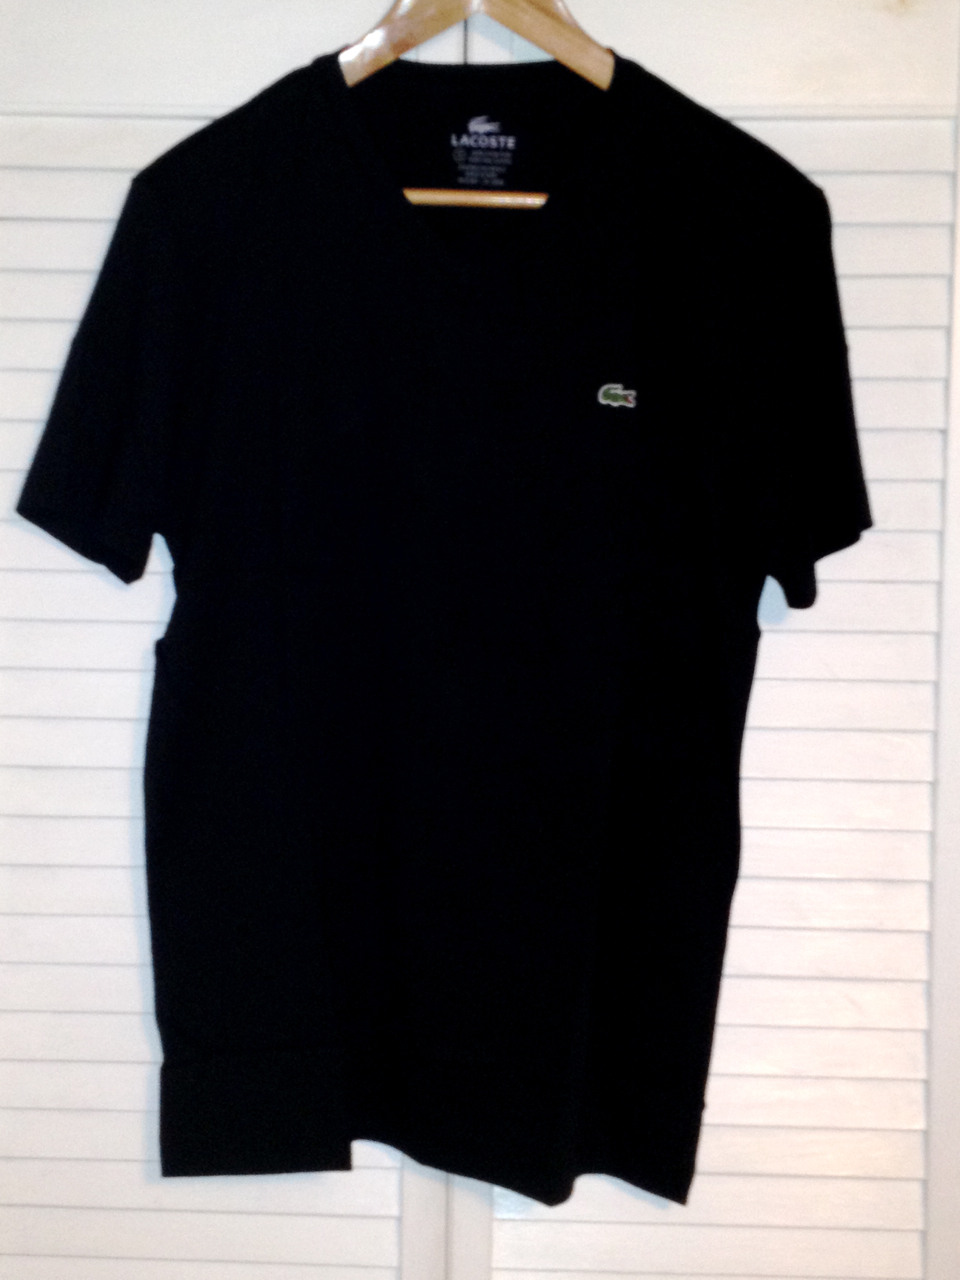 Lacoste Mens V Neck T Shirt - Noir (Black)